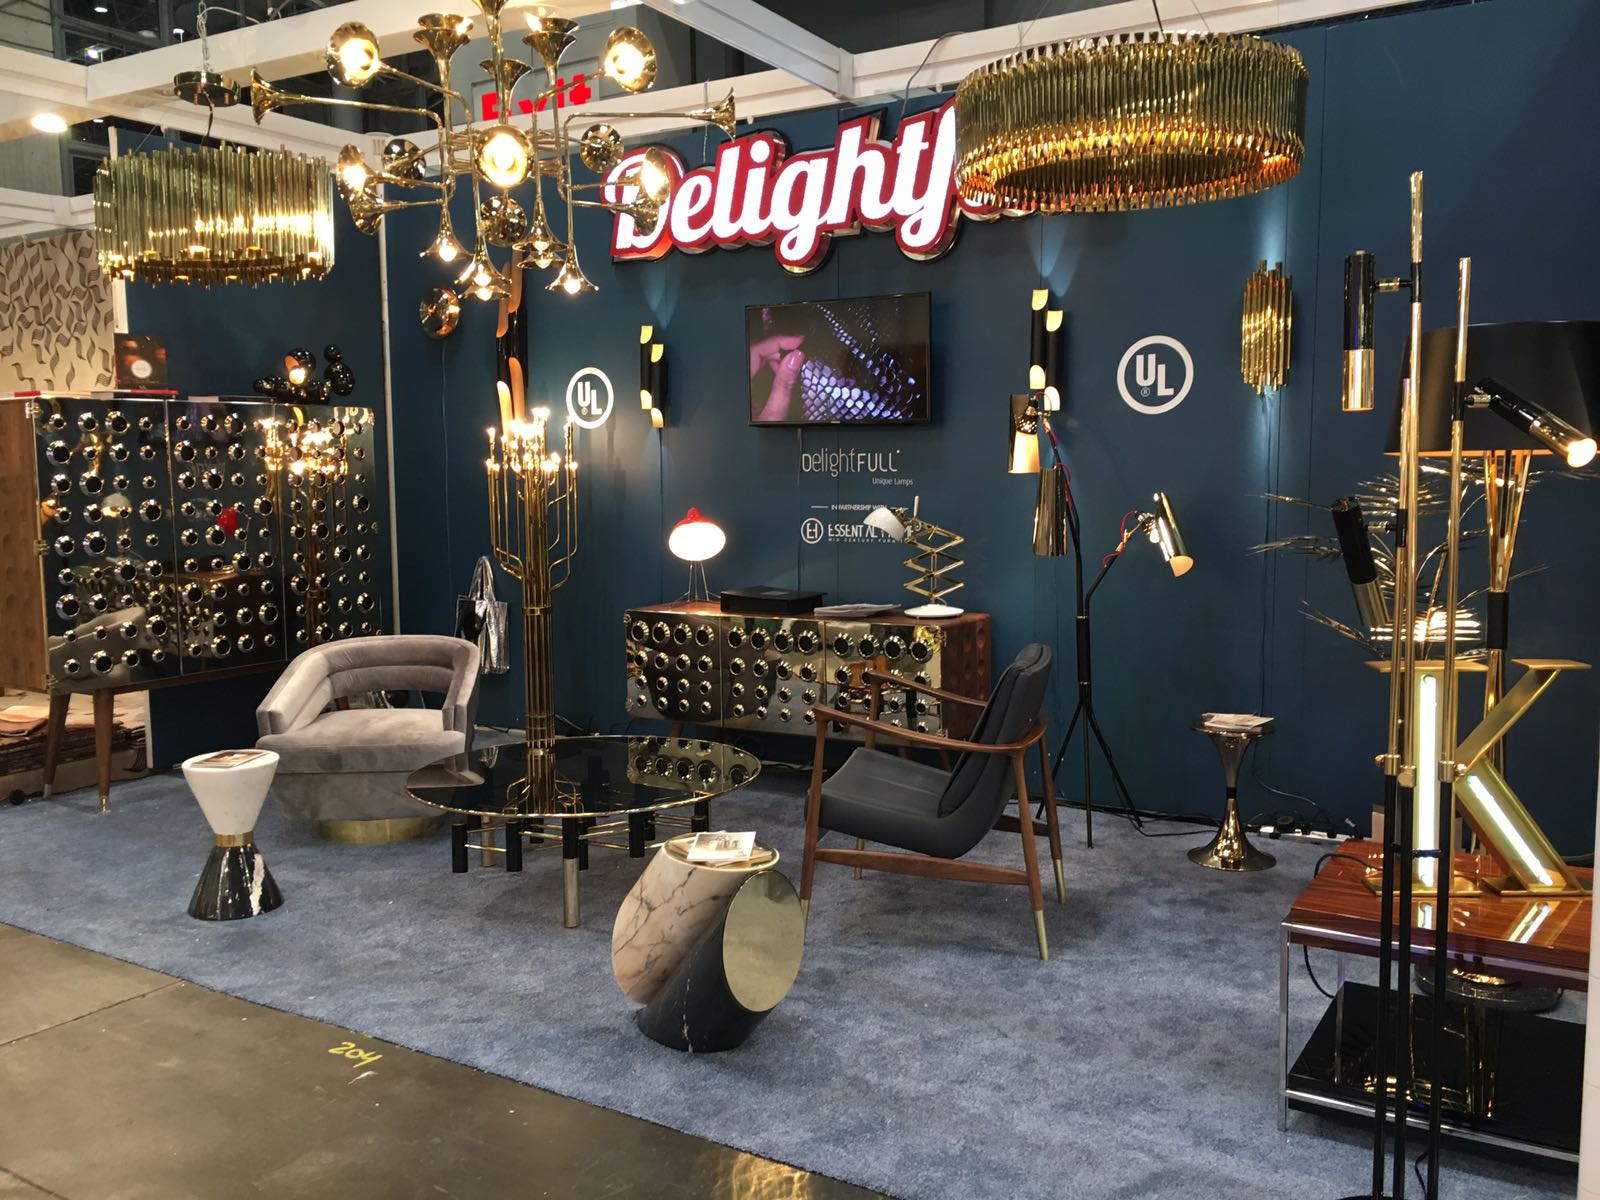 Highlights from BDNY 2016 bdny 2016 Highlights from BDNY 2016  B307AAEF96FCF710858D026BF8E614AC45C829051F0B6D9D1A pimgpsh fullsize distr